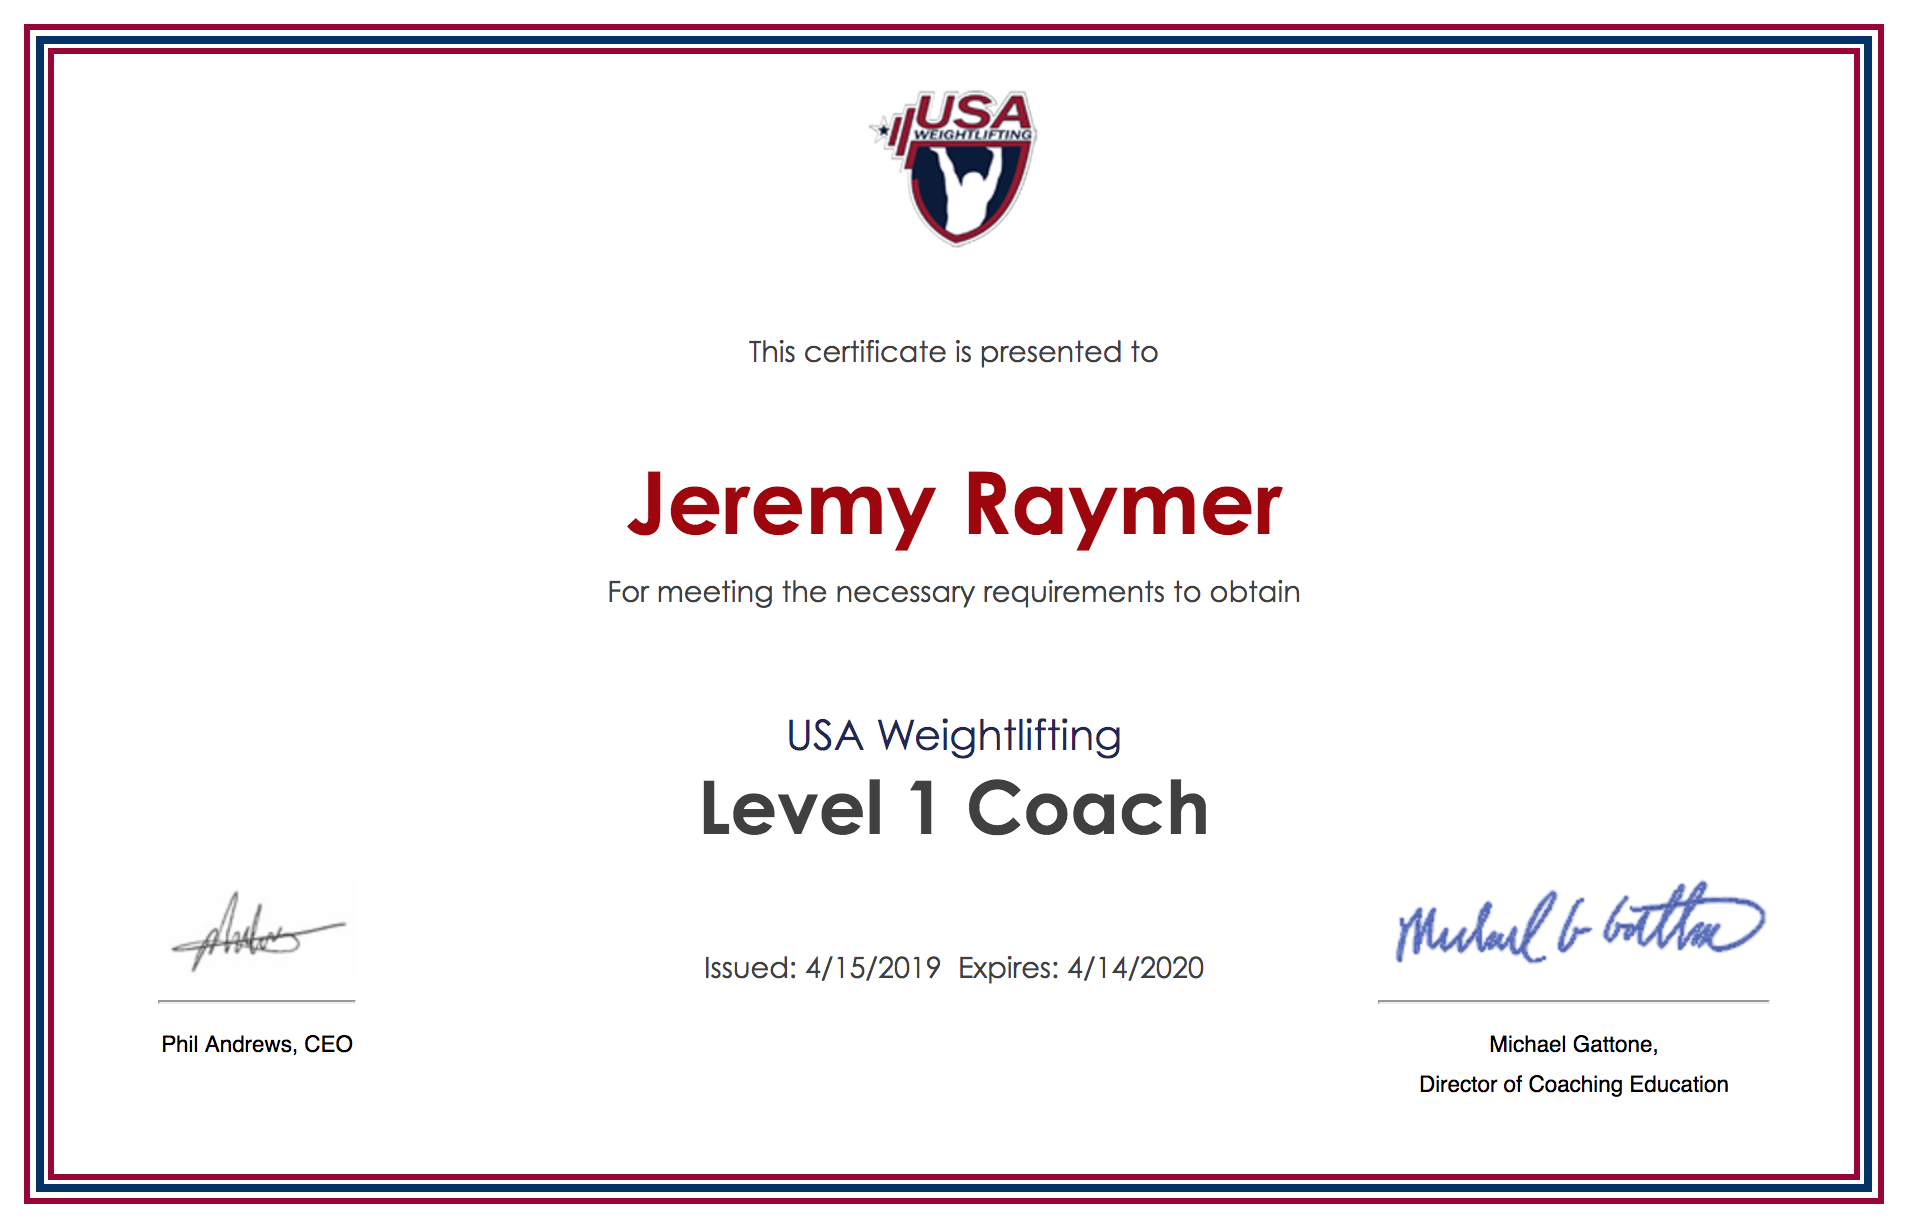 Top 3 Lessons Learned At The Usa Weightlifting Certification Course Raymer Strength